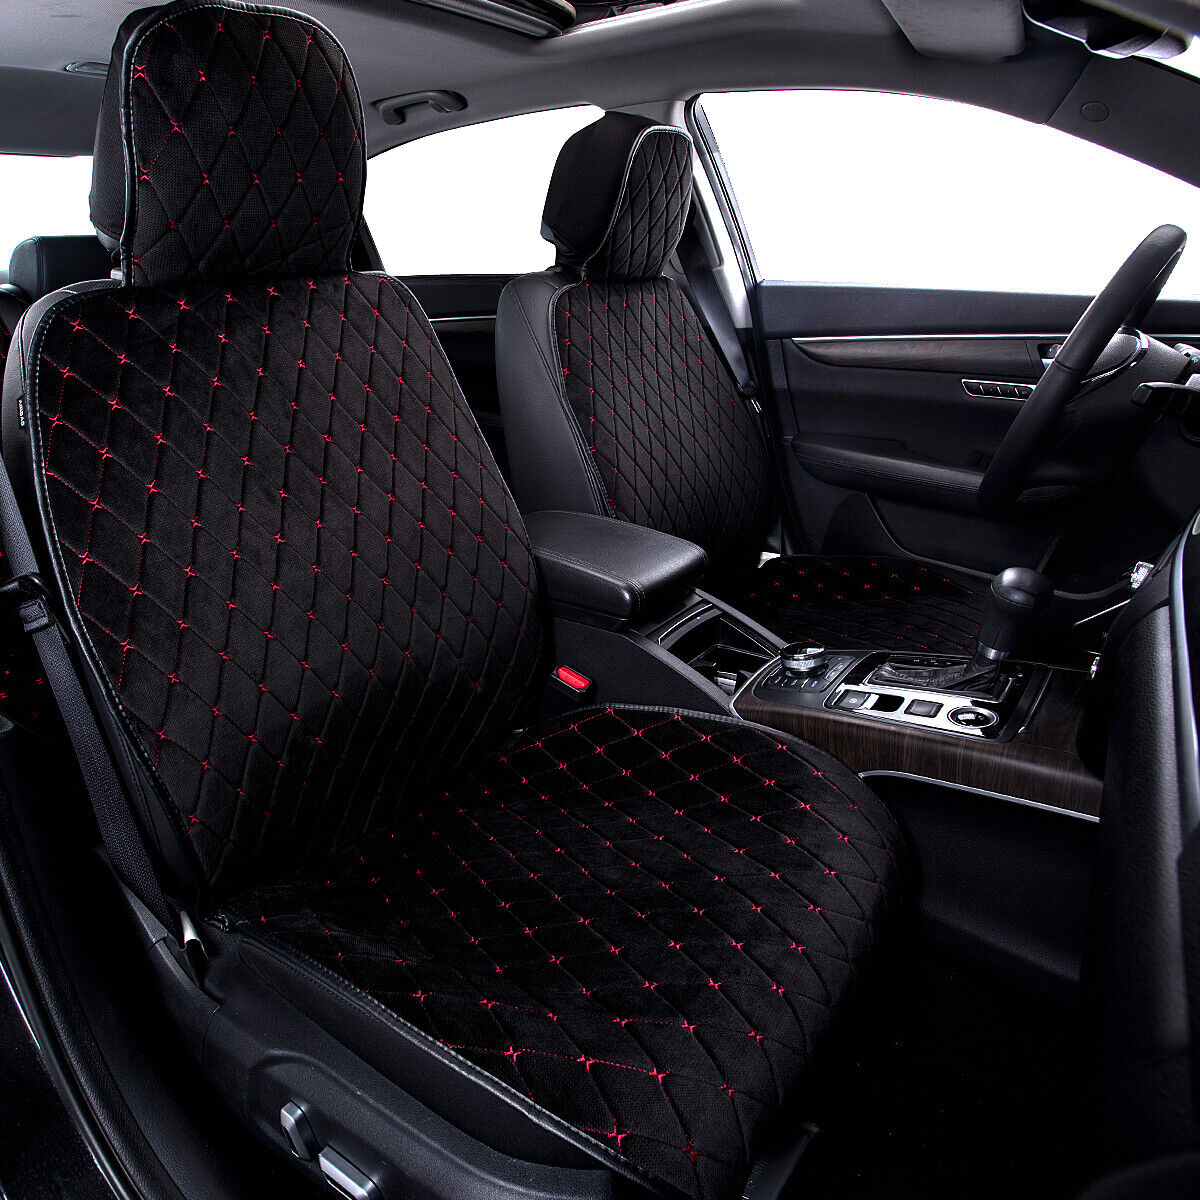 Details about Car Seat Cushion Universal Breathable Red Black fit for SUV  VAN Sedan Truck 1 pc